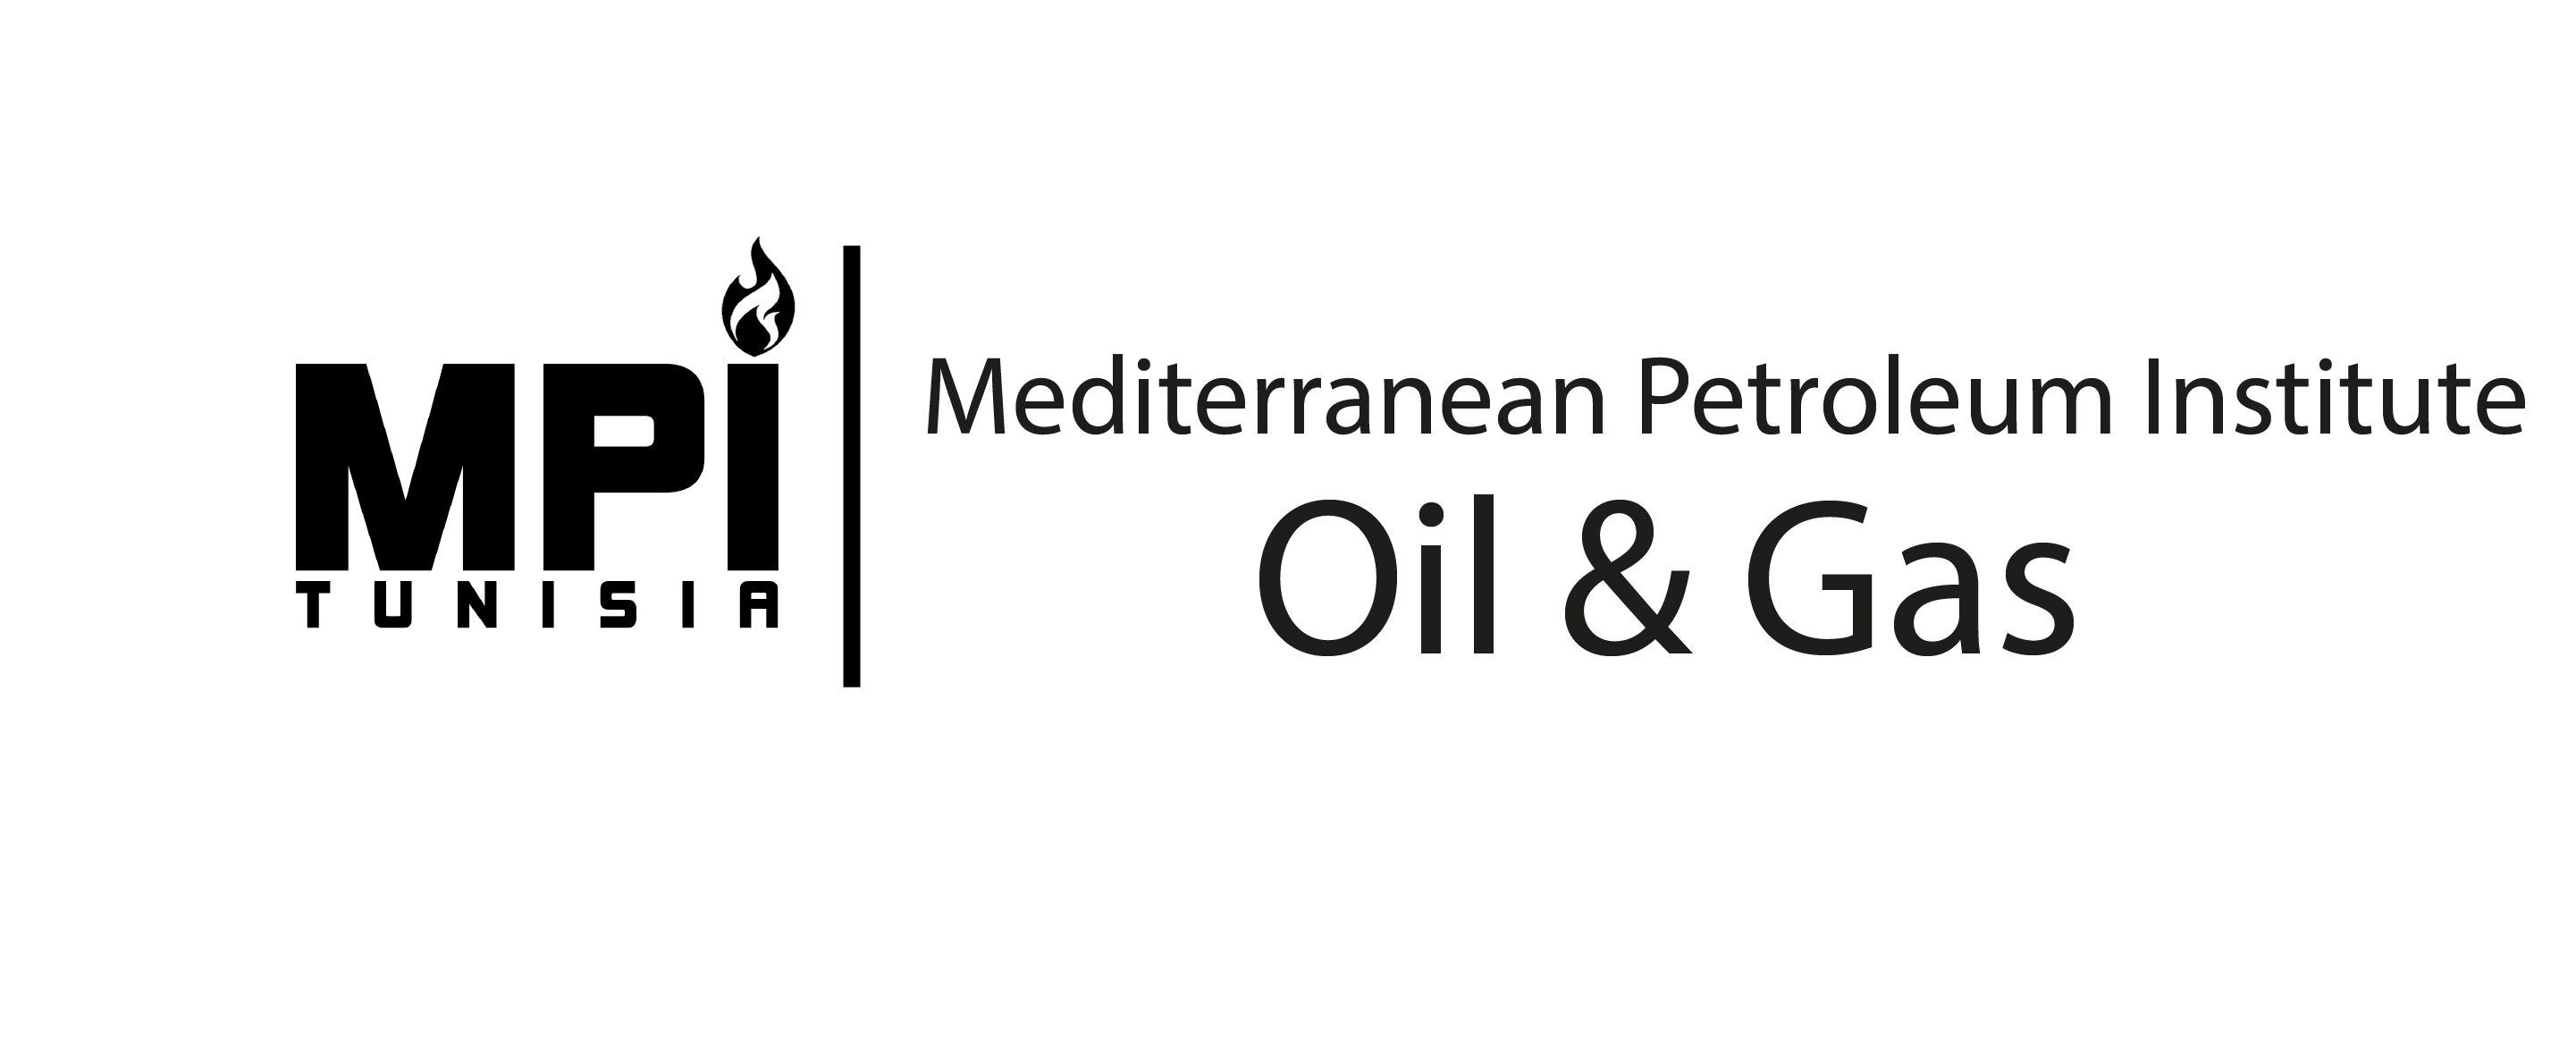 Mediterranean Petroleum Institute